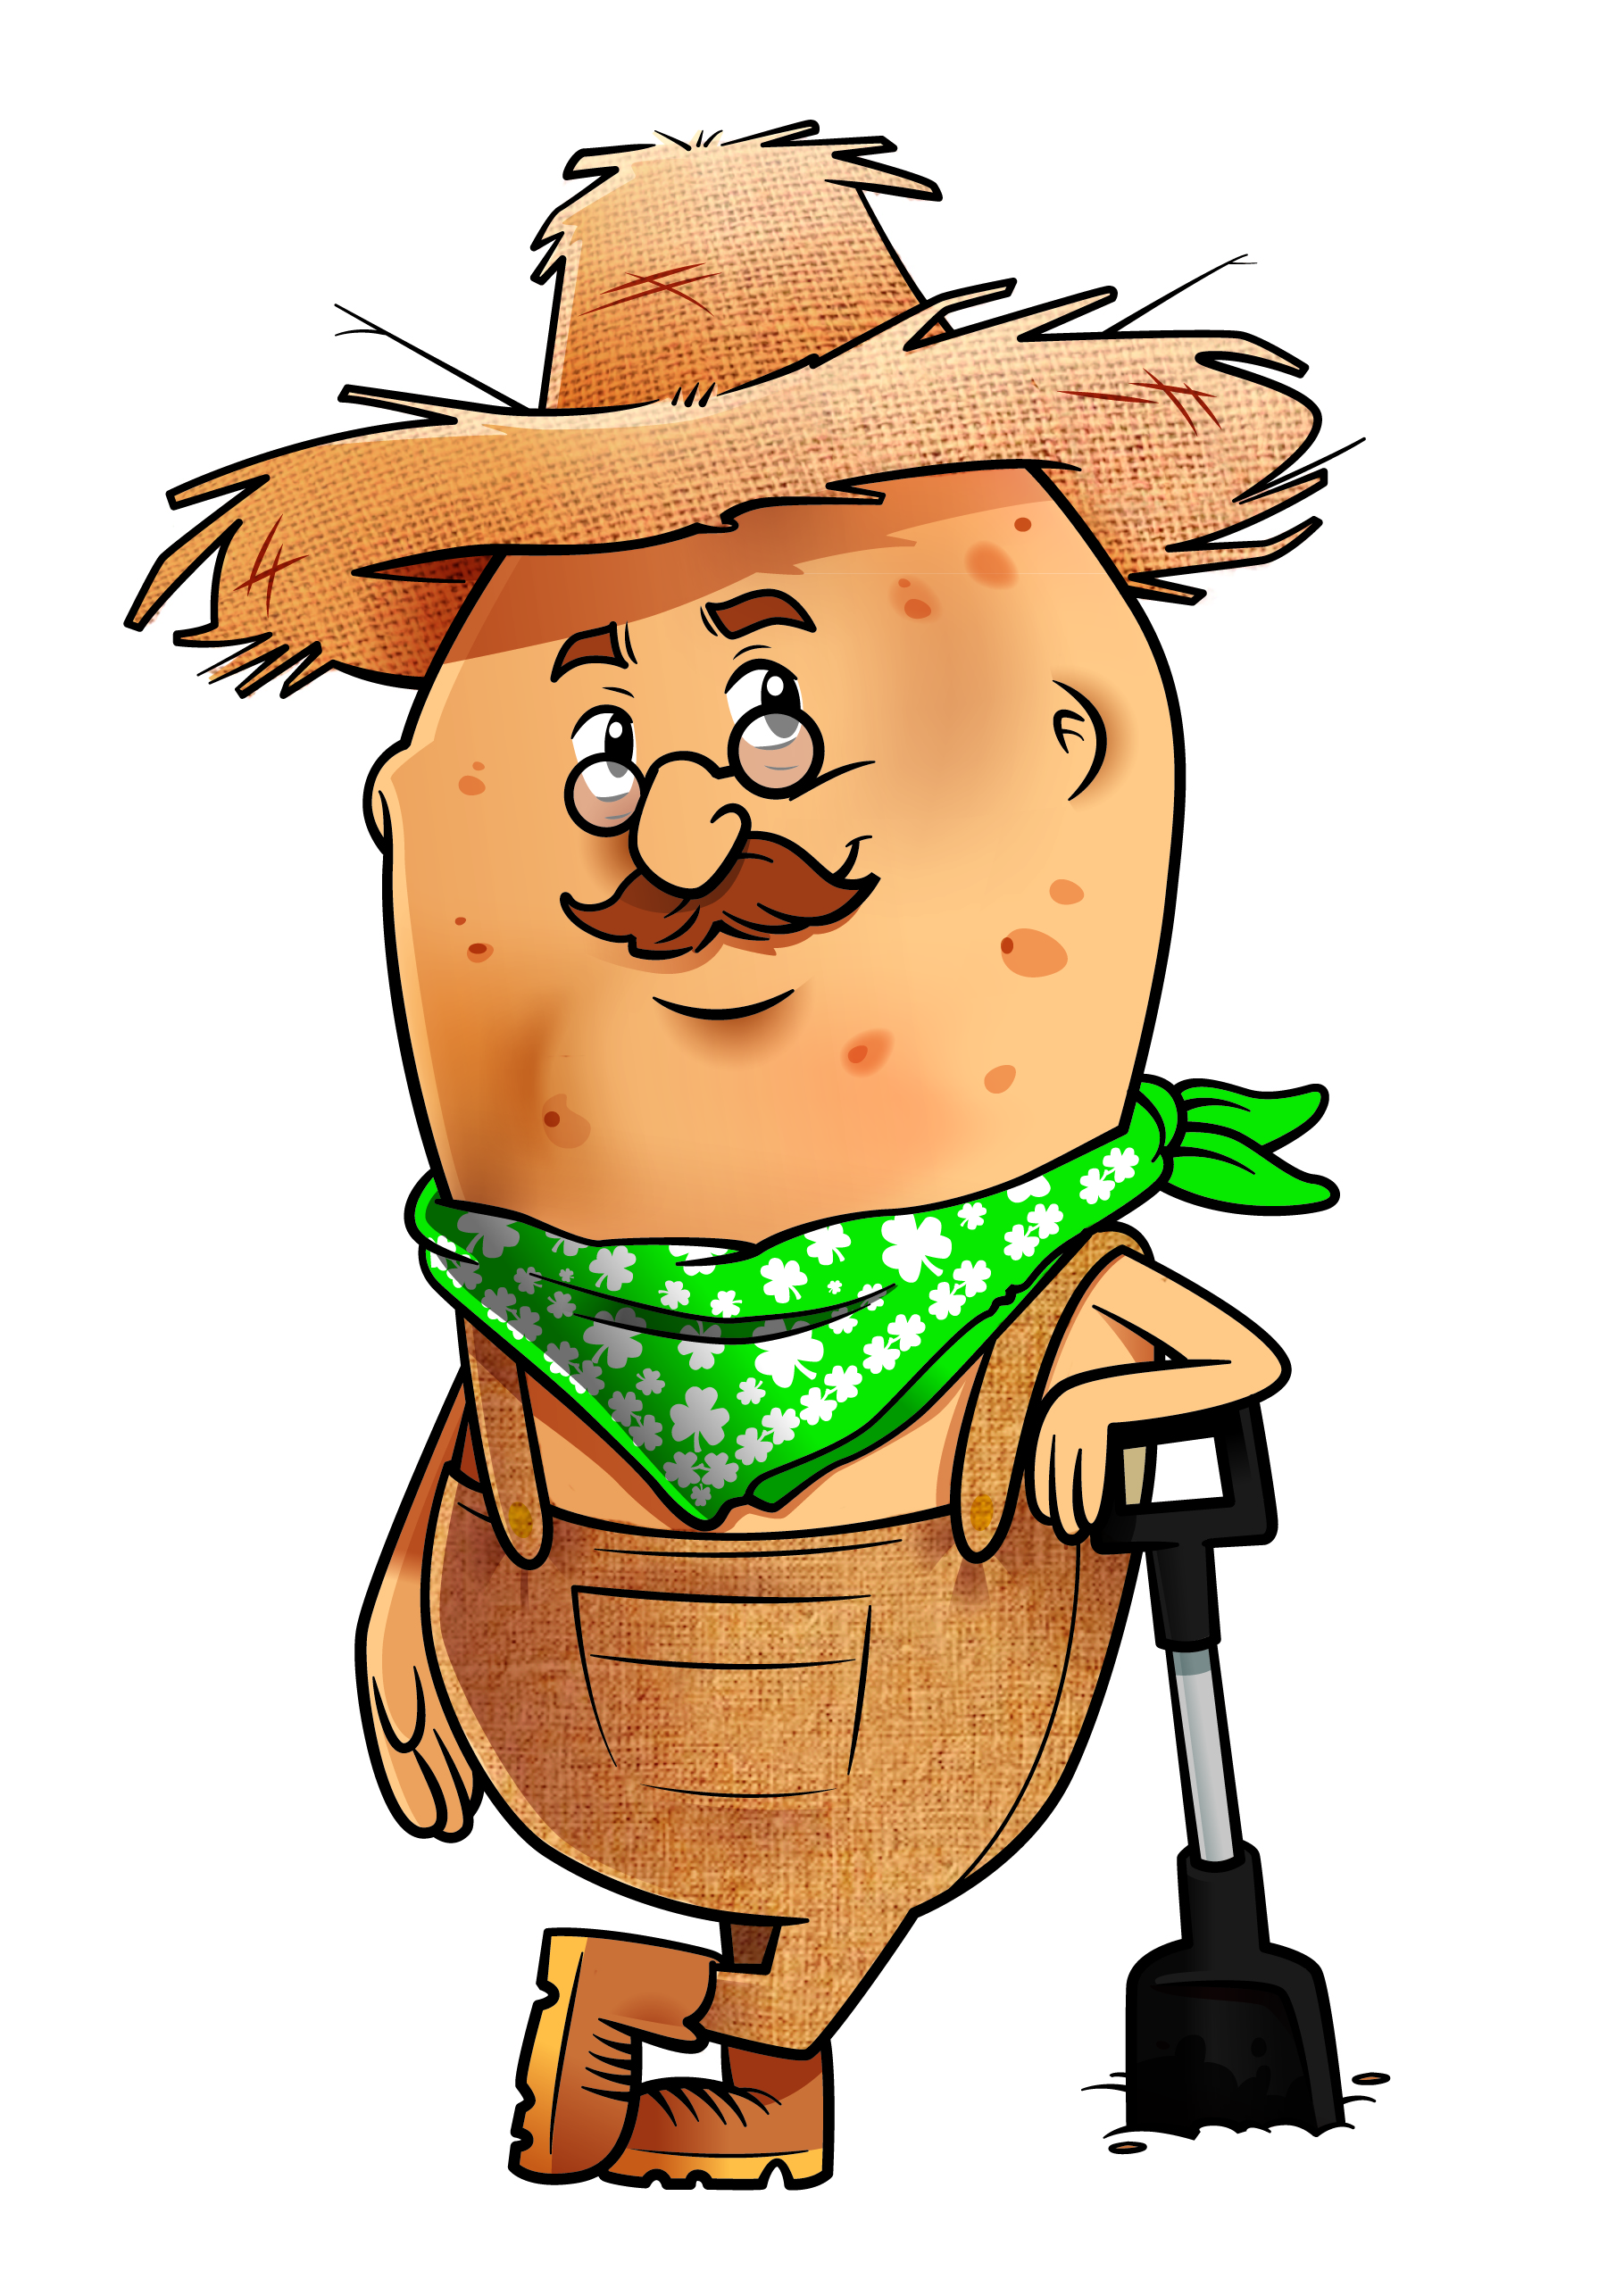 Potato Farmer Mascot